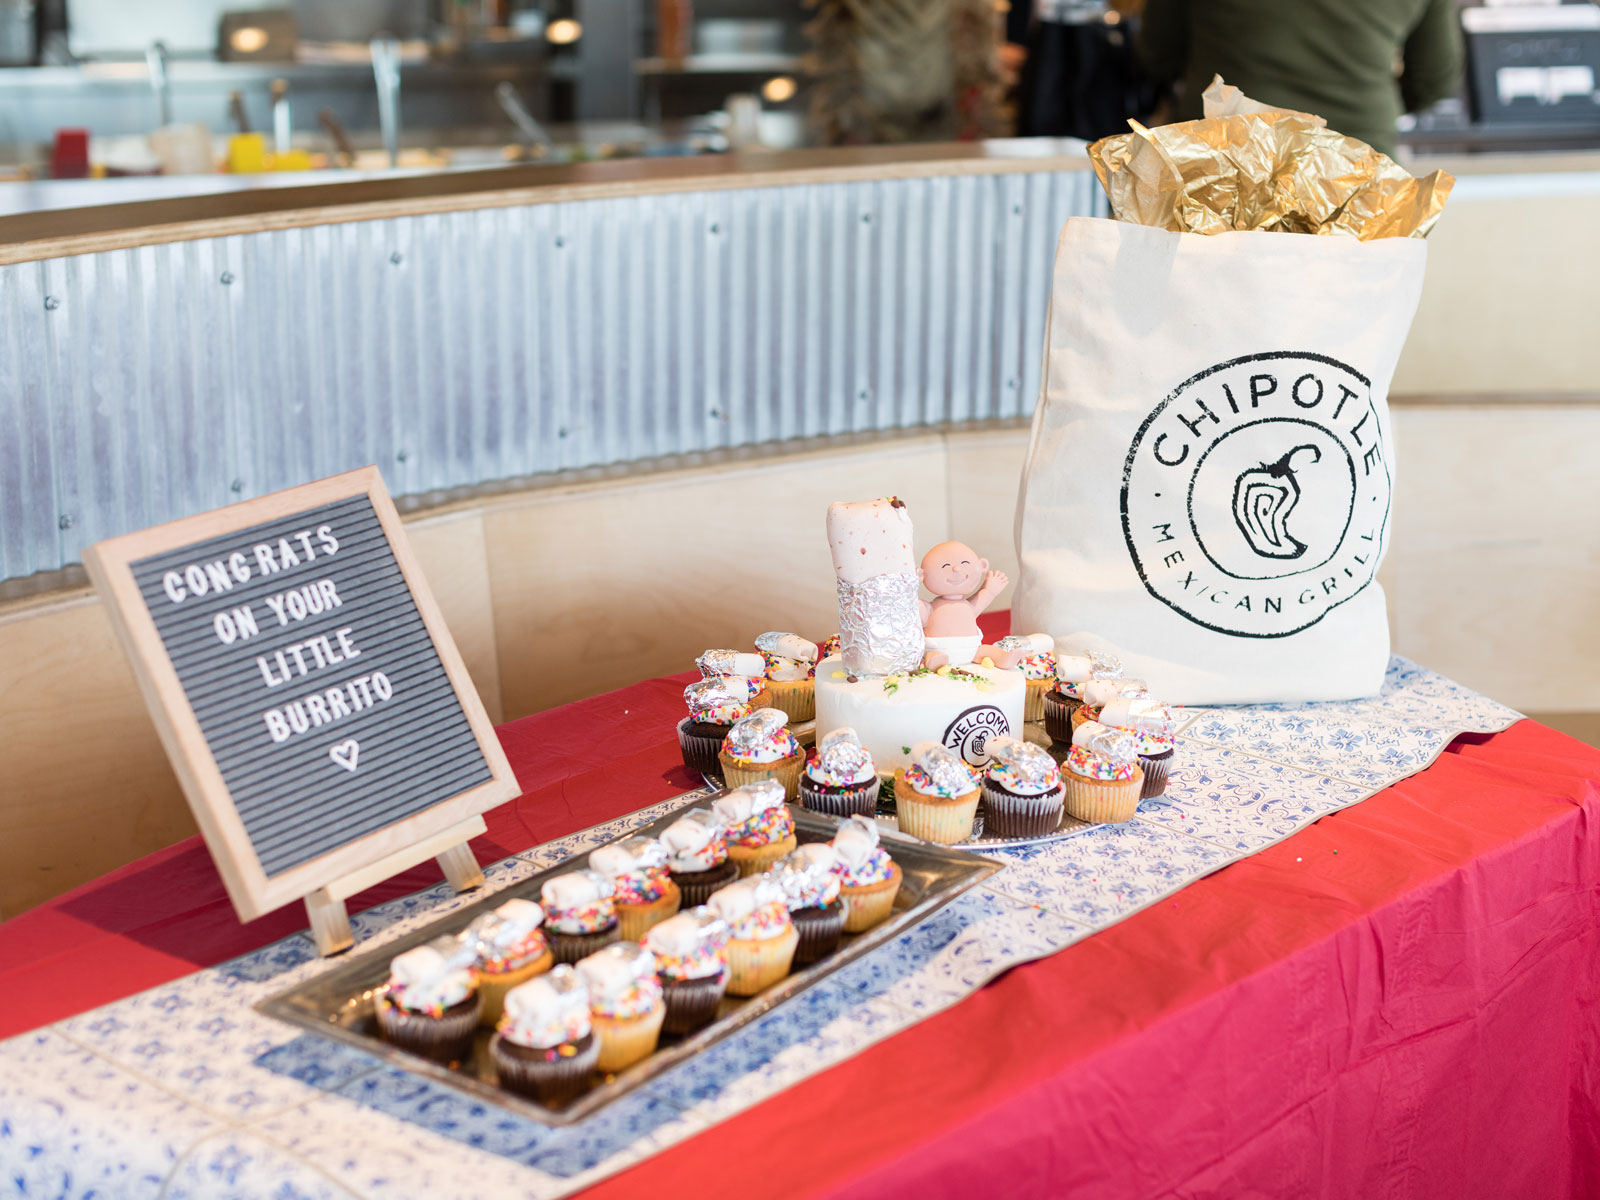 A Woman Gave Birth at Chipotle, So the Restaurant Threw Her a Baby Shower